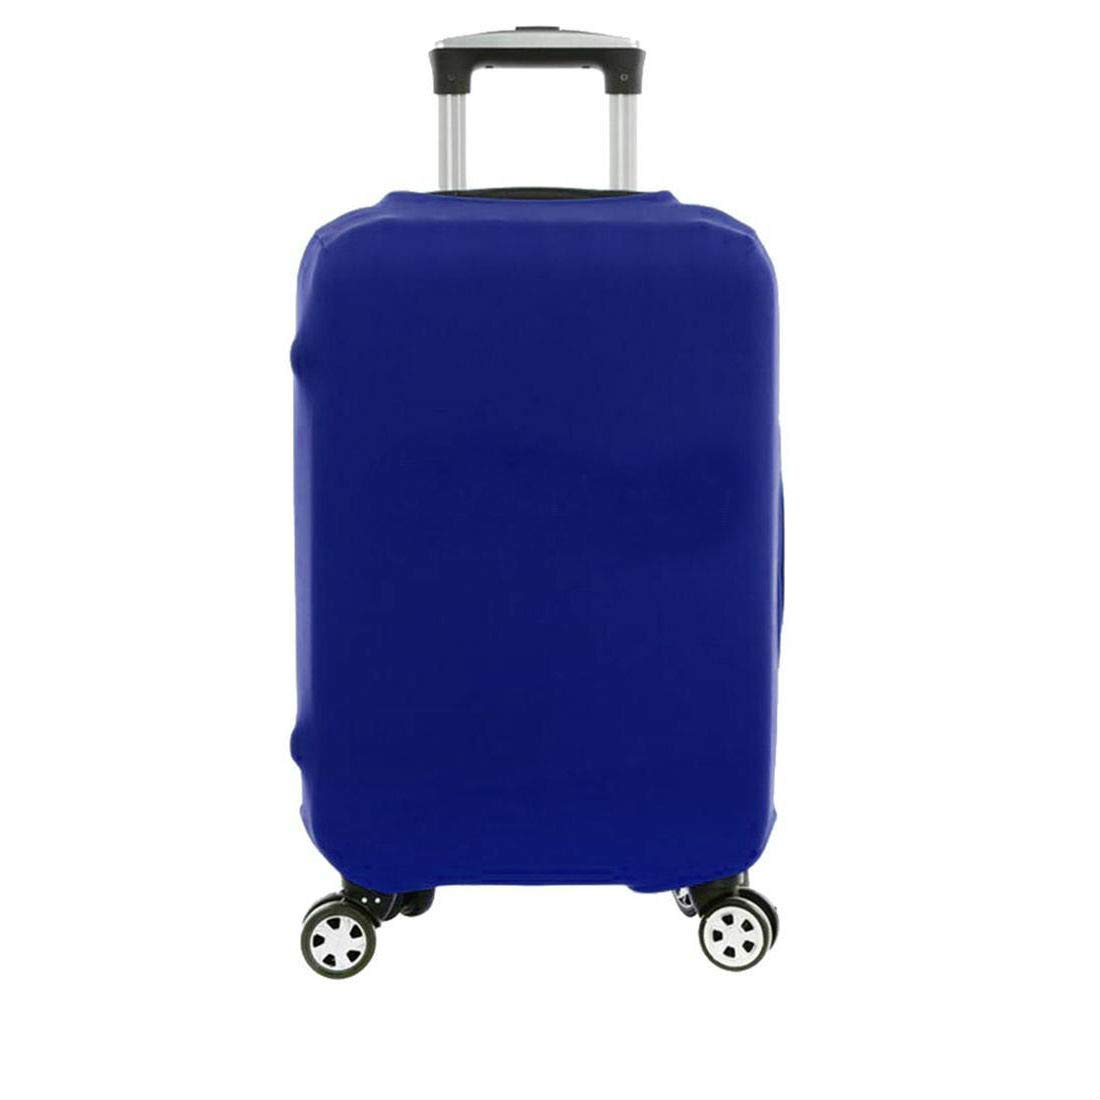 Blue Elastic Luggage Suitcase Bags Cover Protector Anti scratch 18'' 20'' 22'' 24'' 28'' (L - (26''-30'')) by Unknown